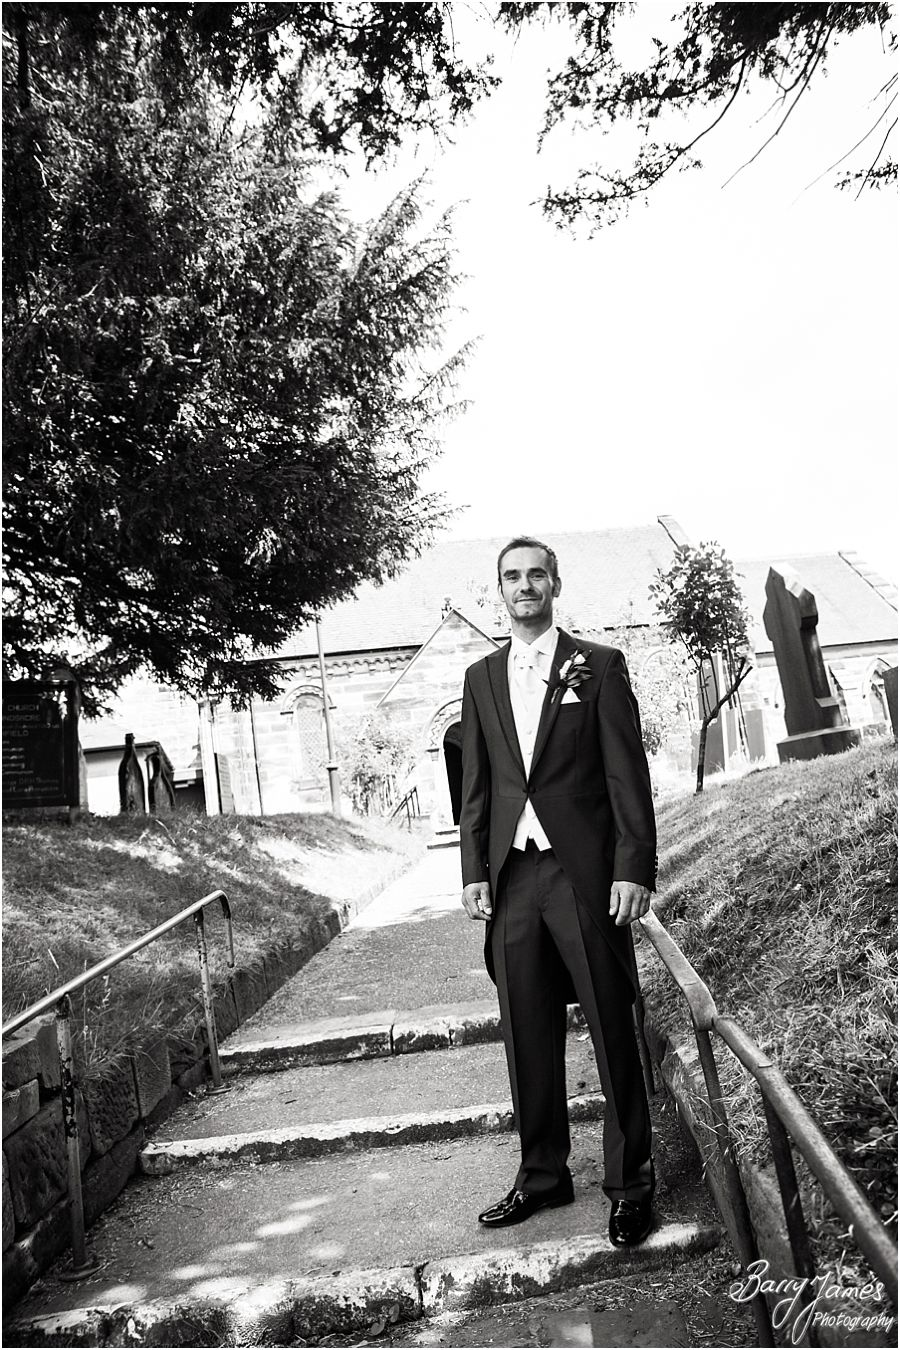 Contemporary photos of the groomsmen at St John the Baptist in Armitage by Rugeley Wedding Photographer Barry James